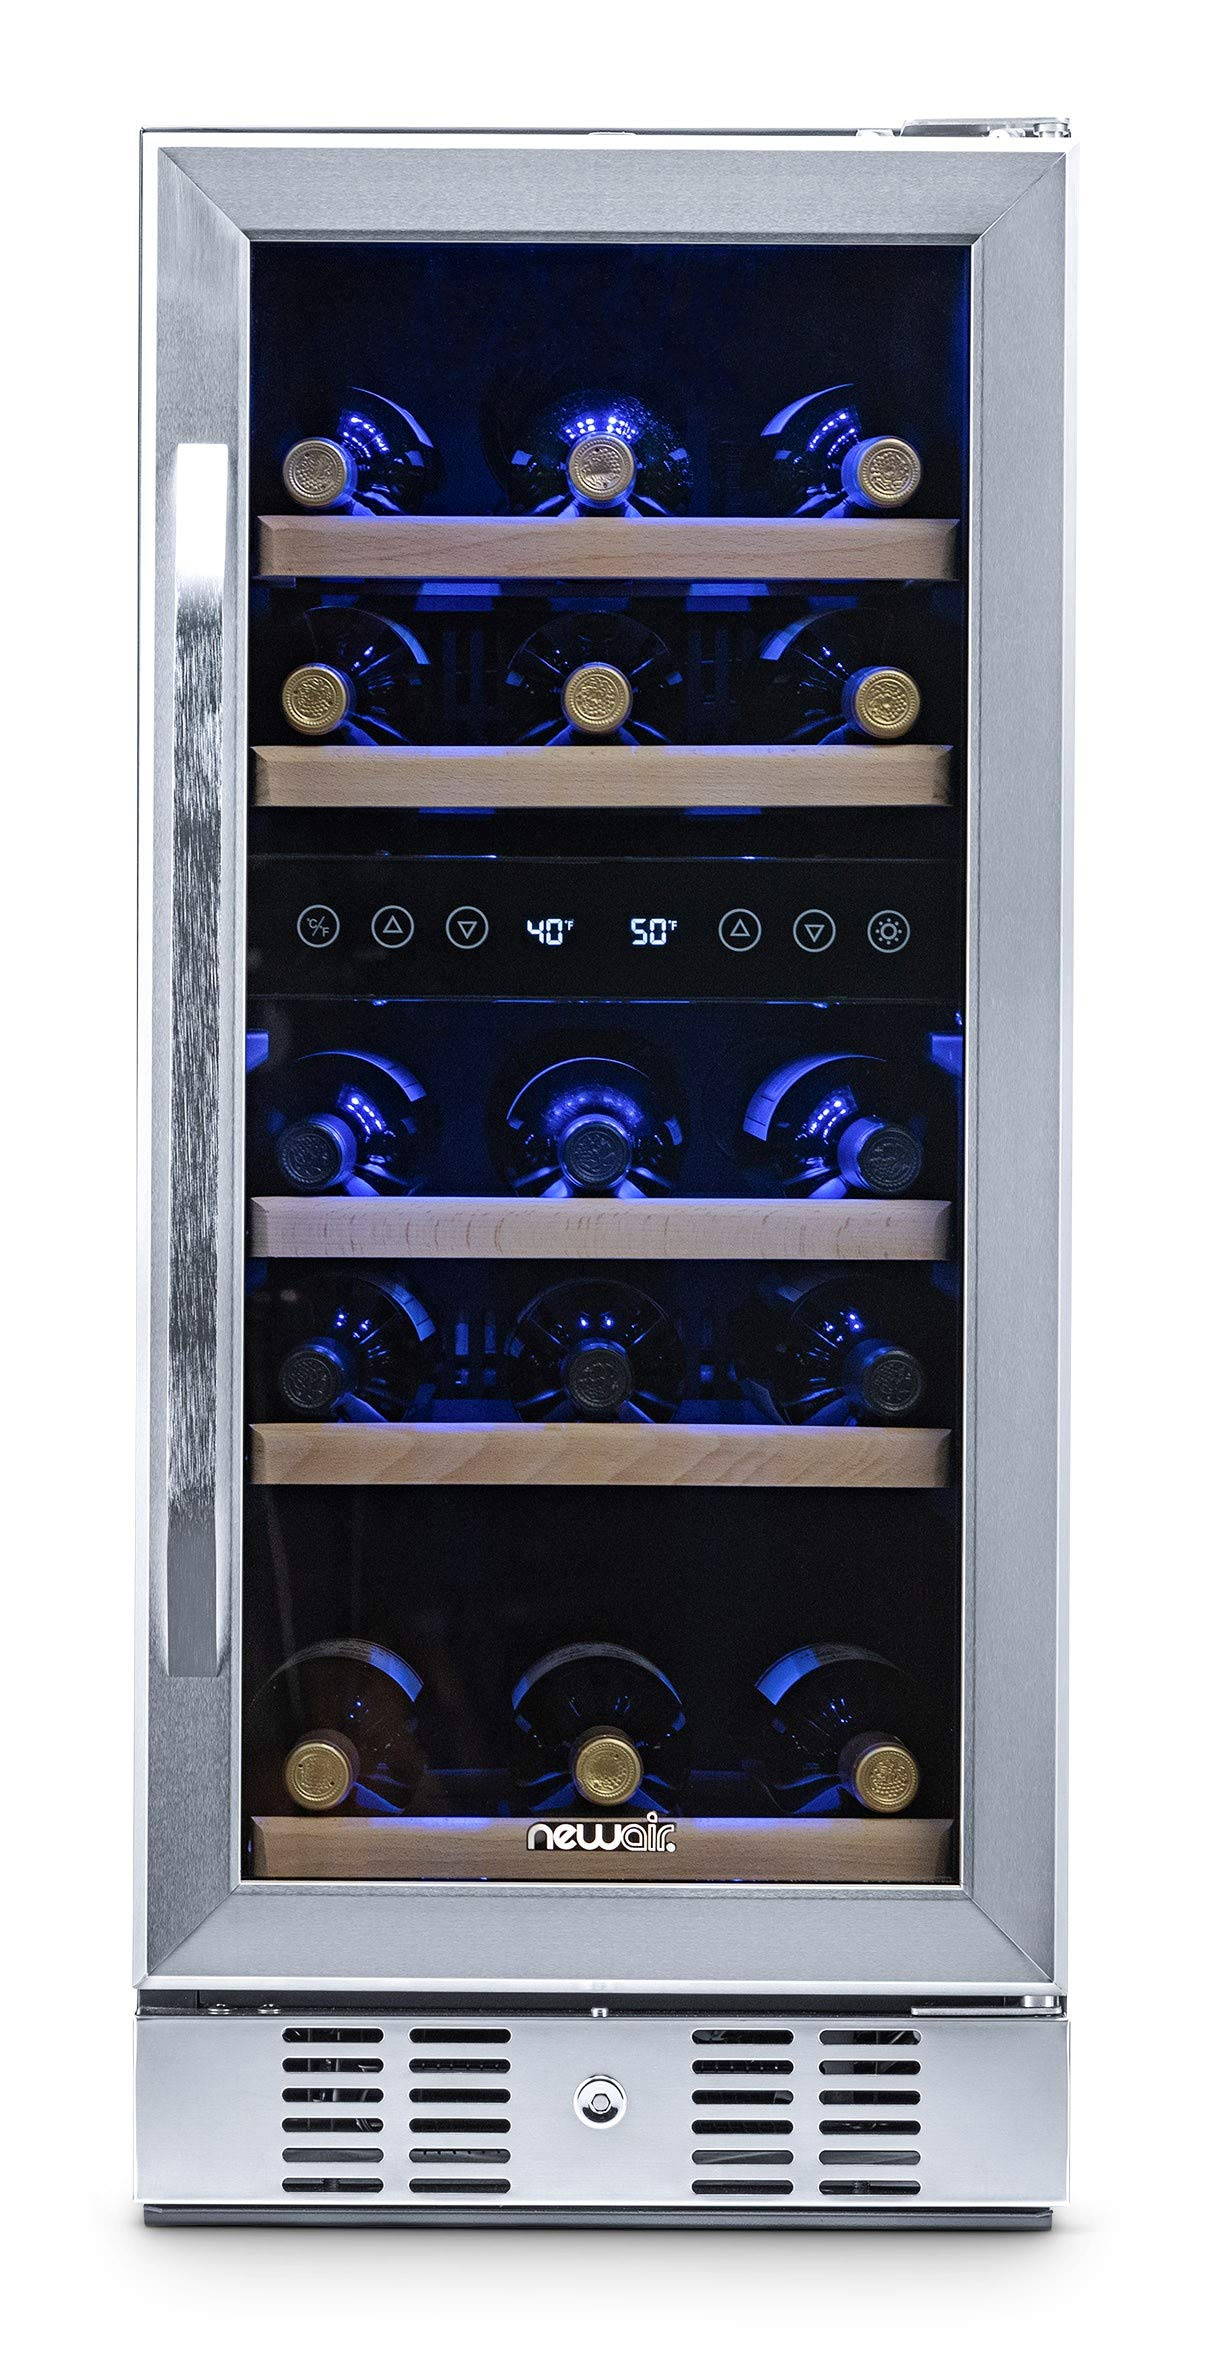 NewAir AWR-290DB Wine Cooler, 29 Bottle, Stainless Steel by NewAir